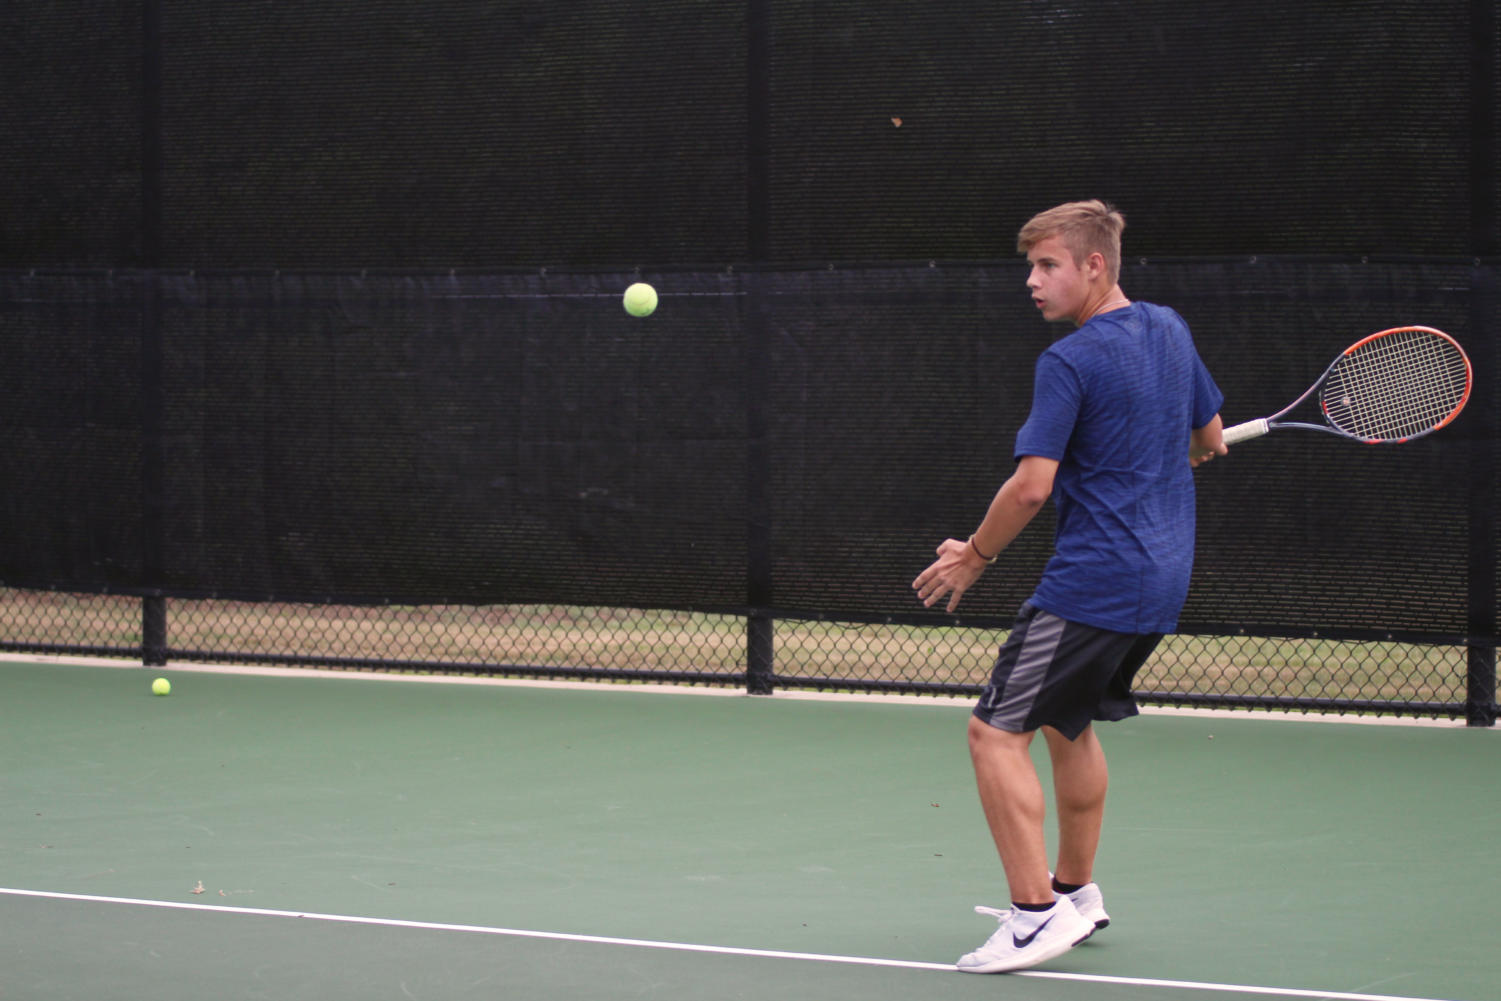 Sophomore Tyrell Crosby switches to his forehand.